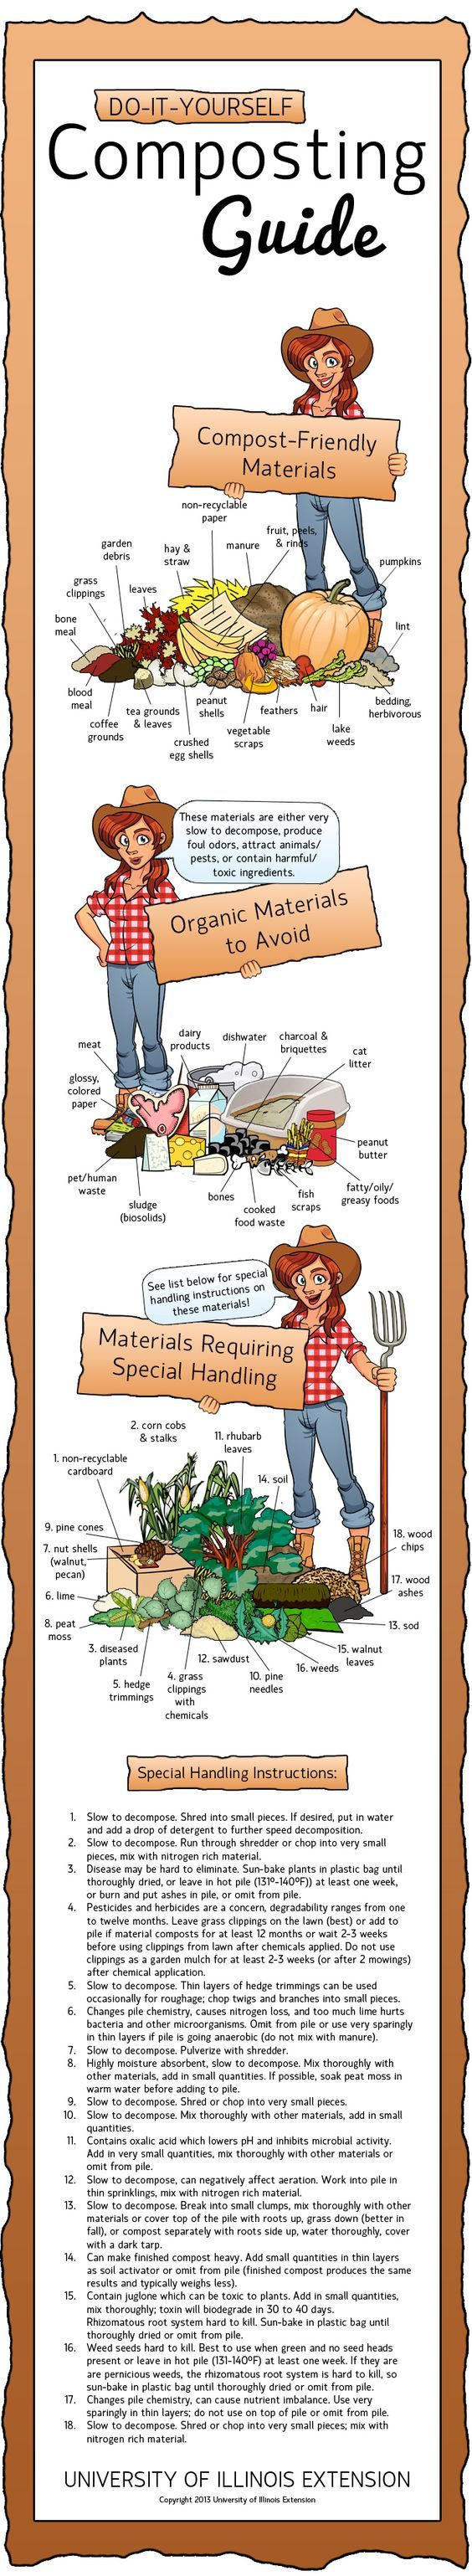 Thinking of starting a compost pile? Make sure you know what you should and should not compost.: